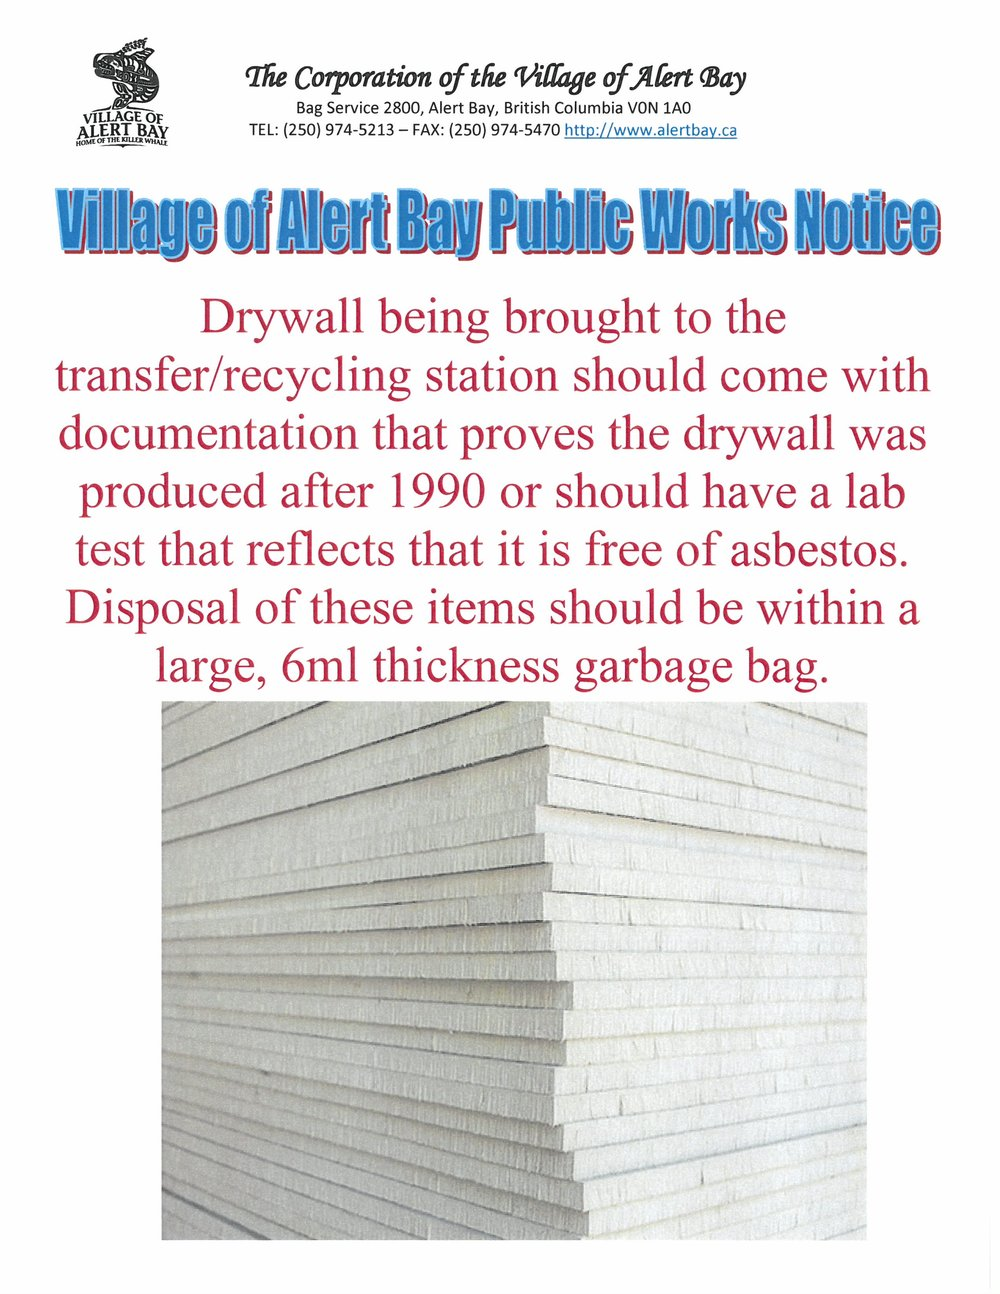 Public Works Poster February 11, 2019 Drywall.jpg